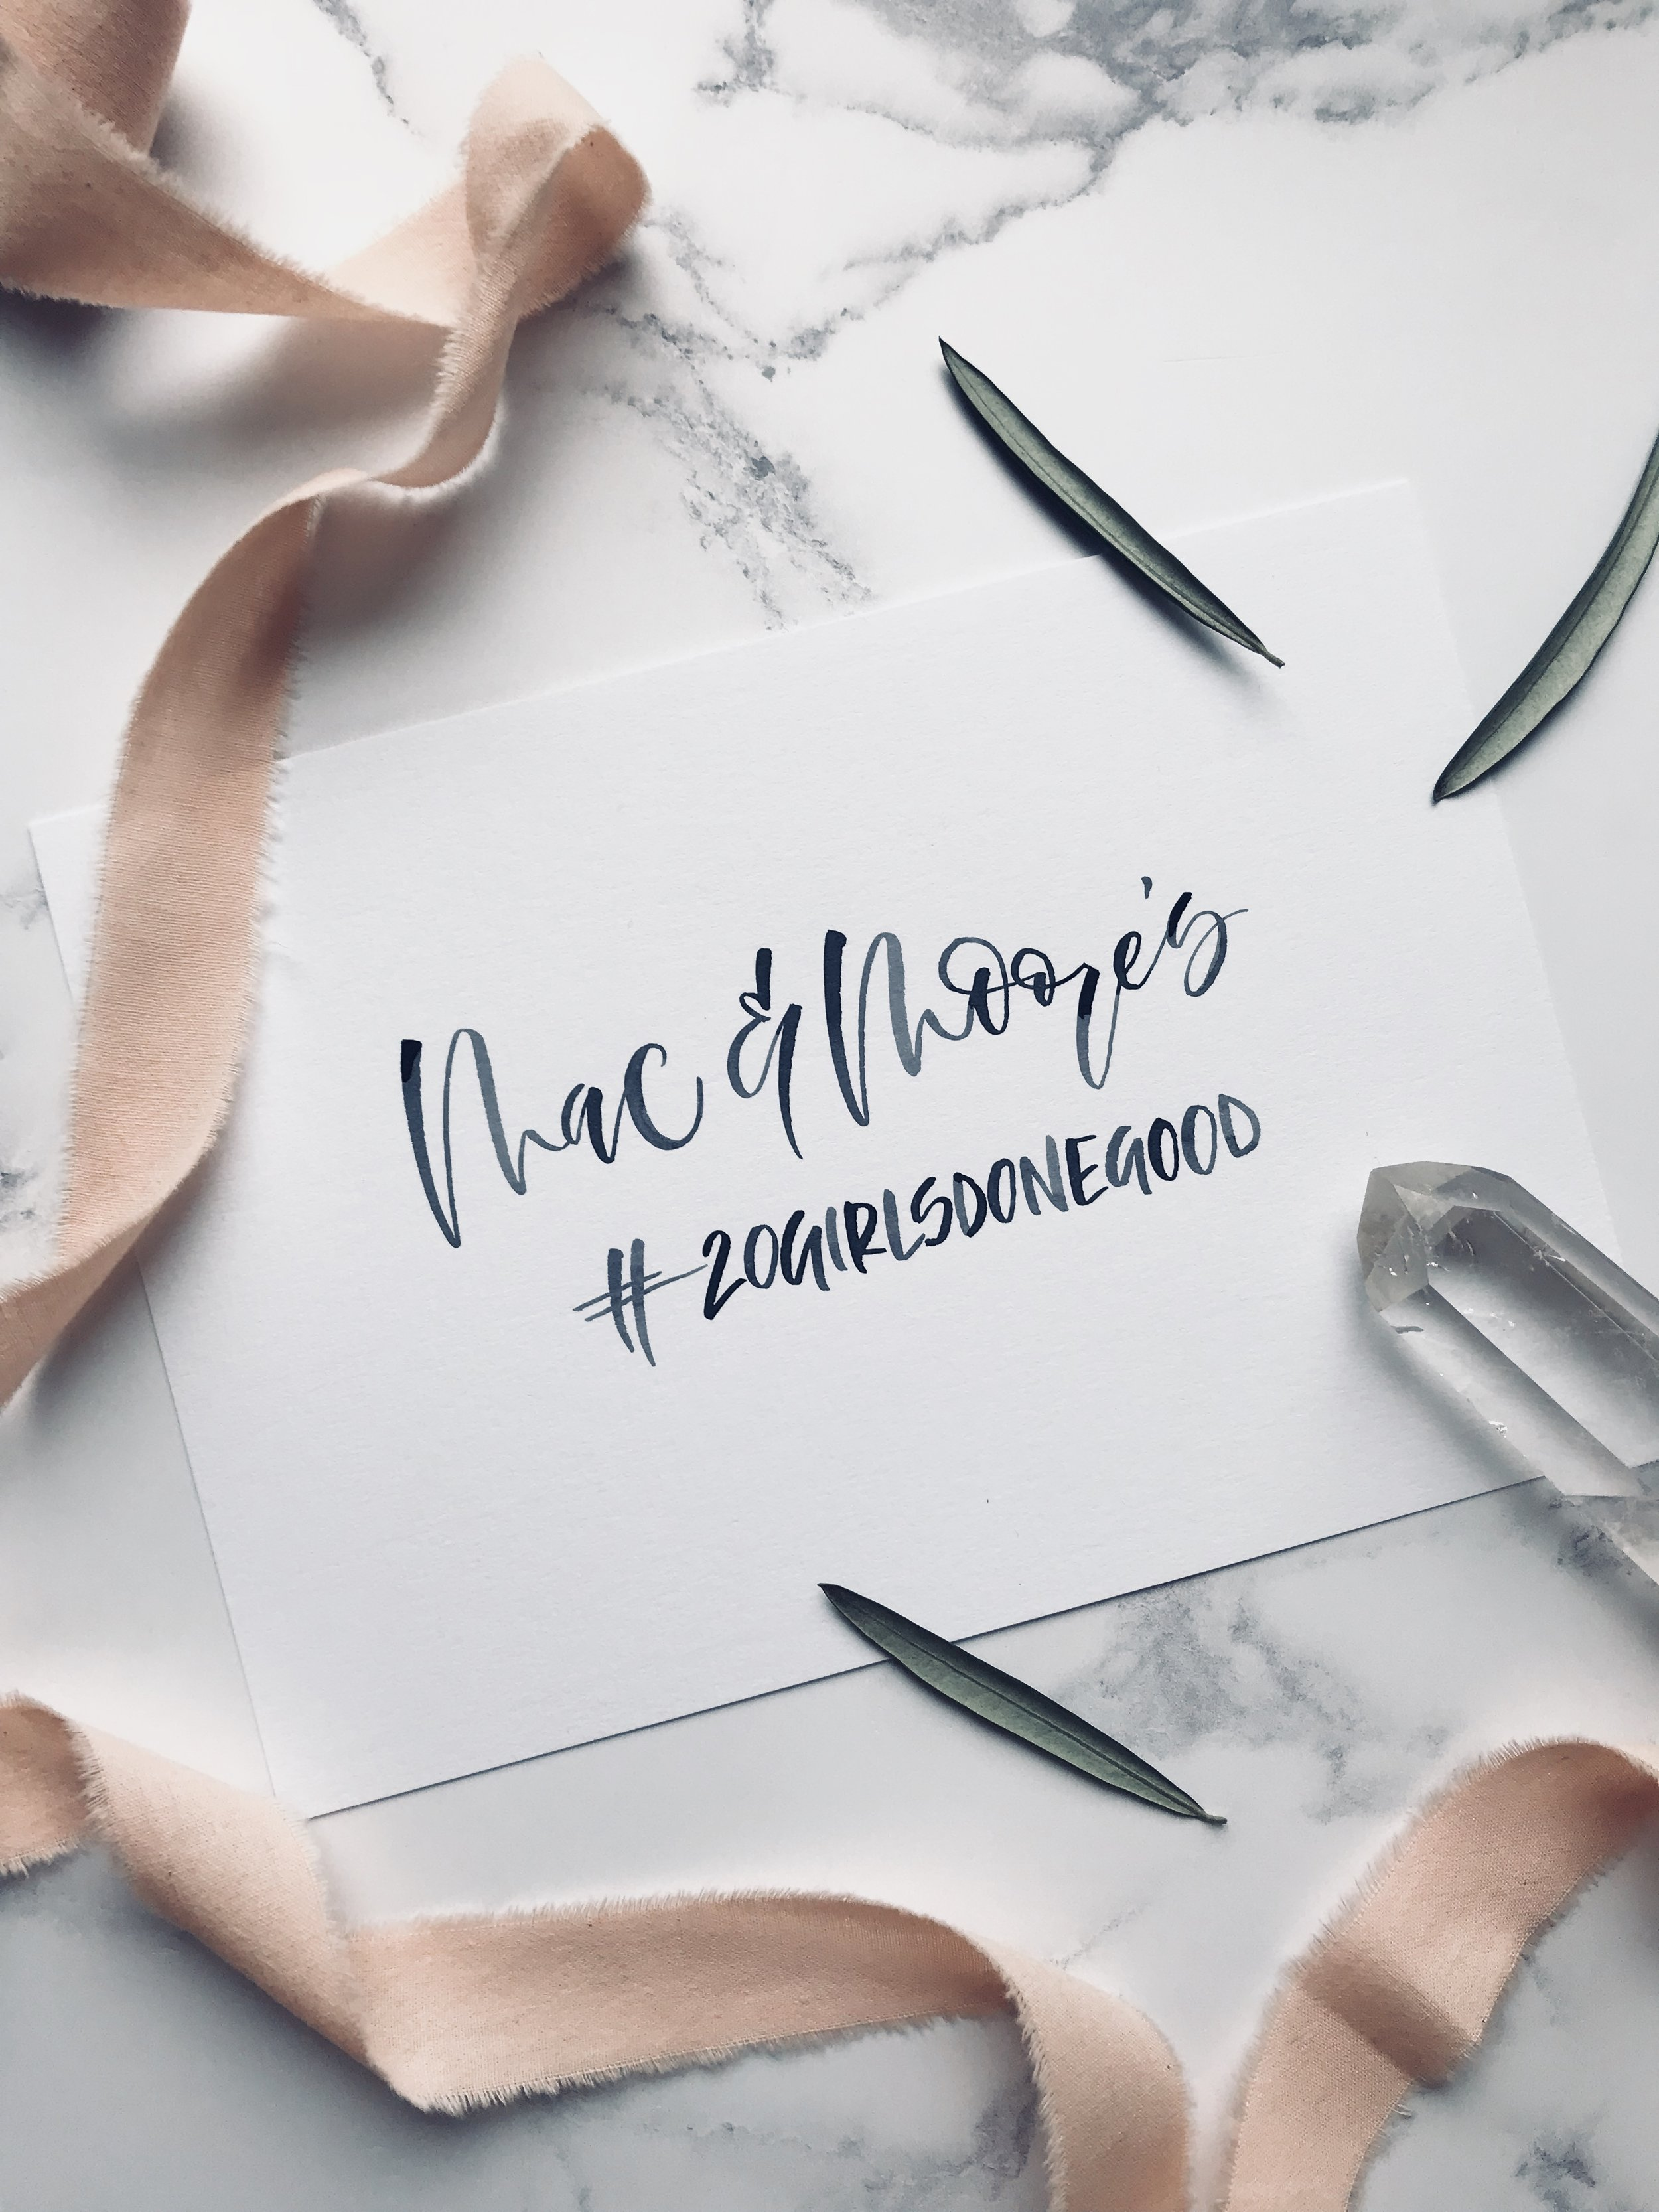 Check our Instagram @macandmoore every day for updates! Thanks to  Palepress  for this beautiful image!